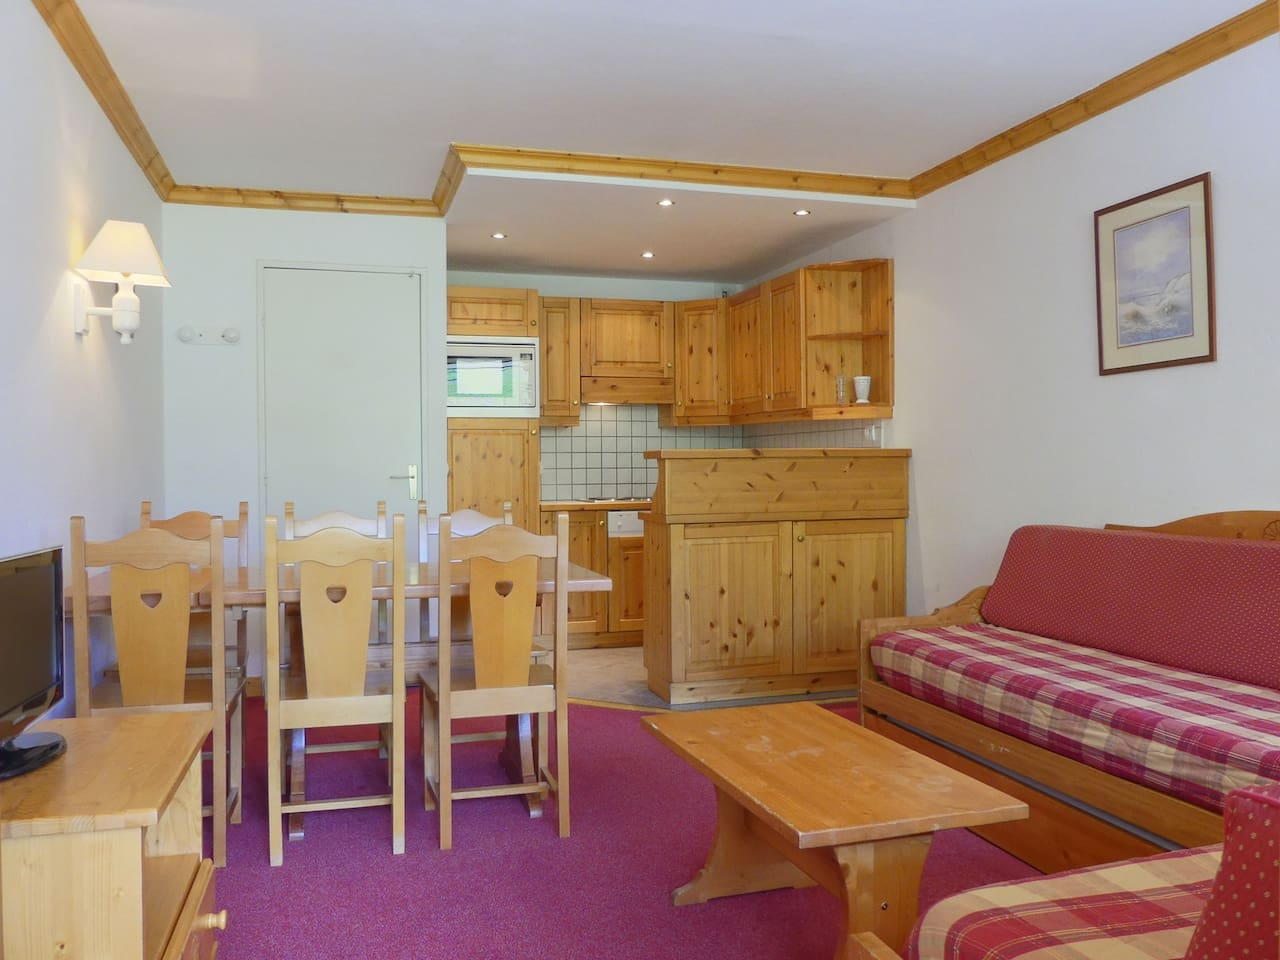 SEJOUR AGREABLE, GRAND BALCON SUD, SKIS AUX PIEDS / PLEASANT LIVING-ROOM, LARGE SOUTH BALCONY, SKI IN & SKI OUT